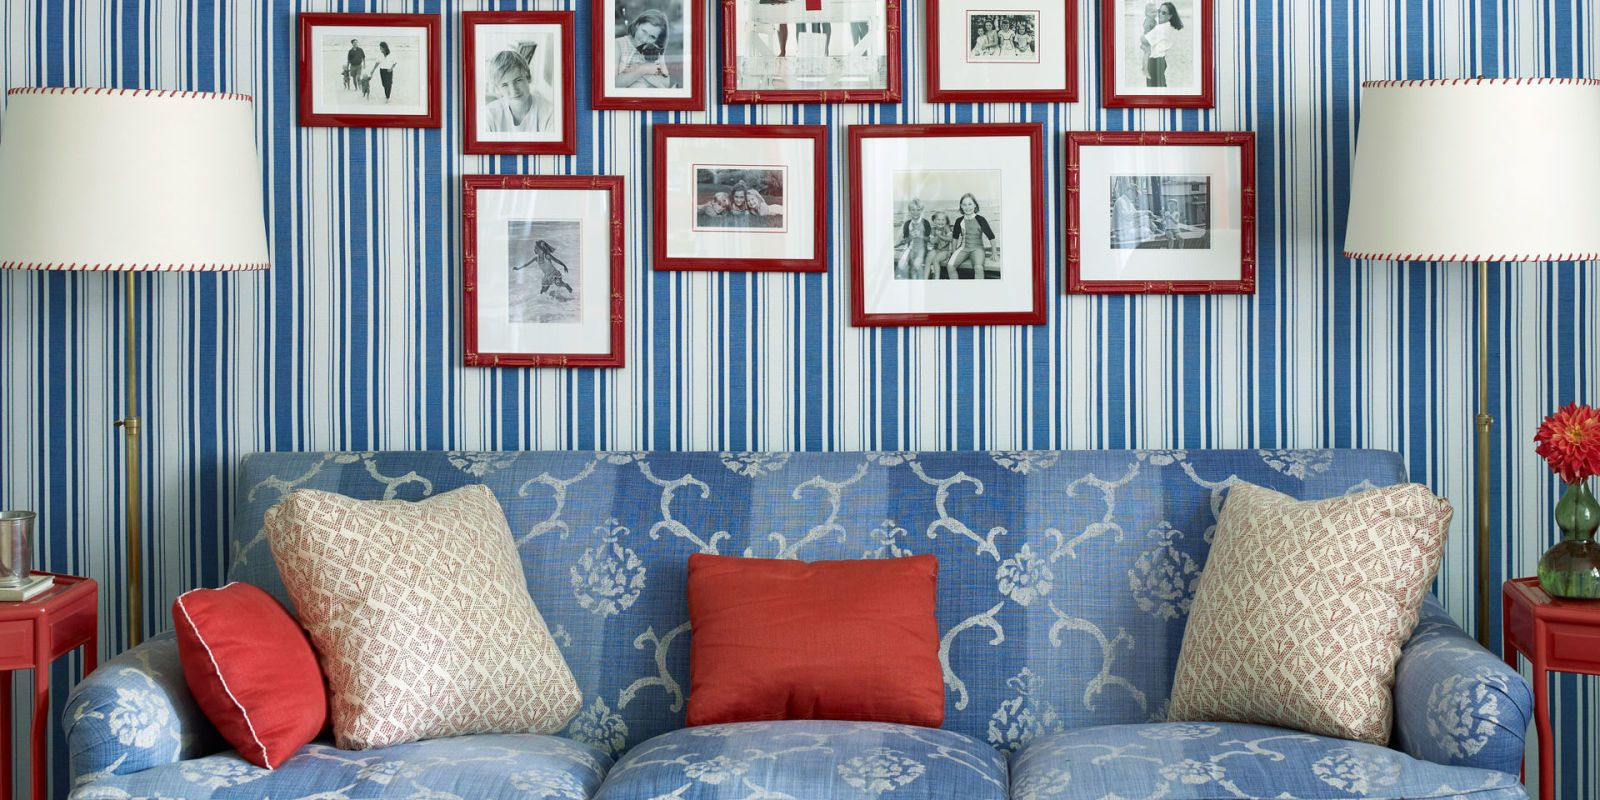 15 Red, White and Blue Rooms That Are Impressively Patriotic